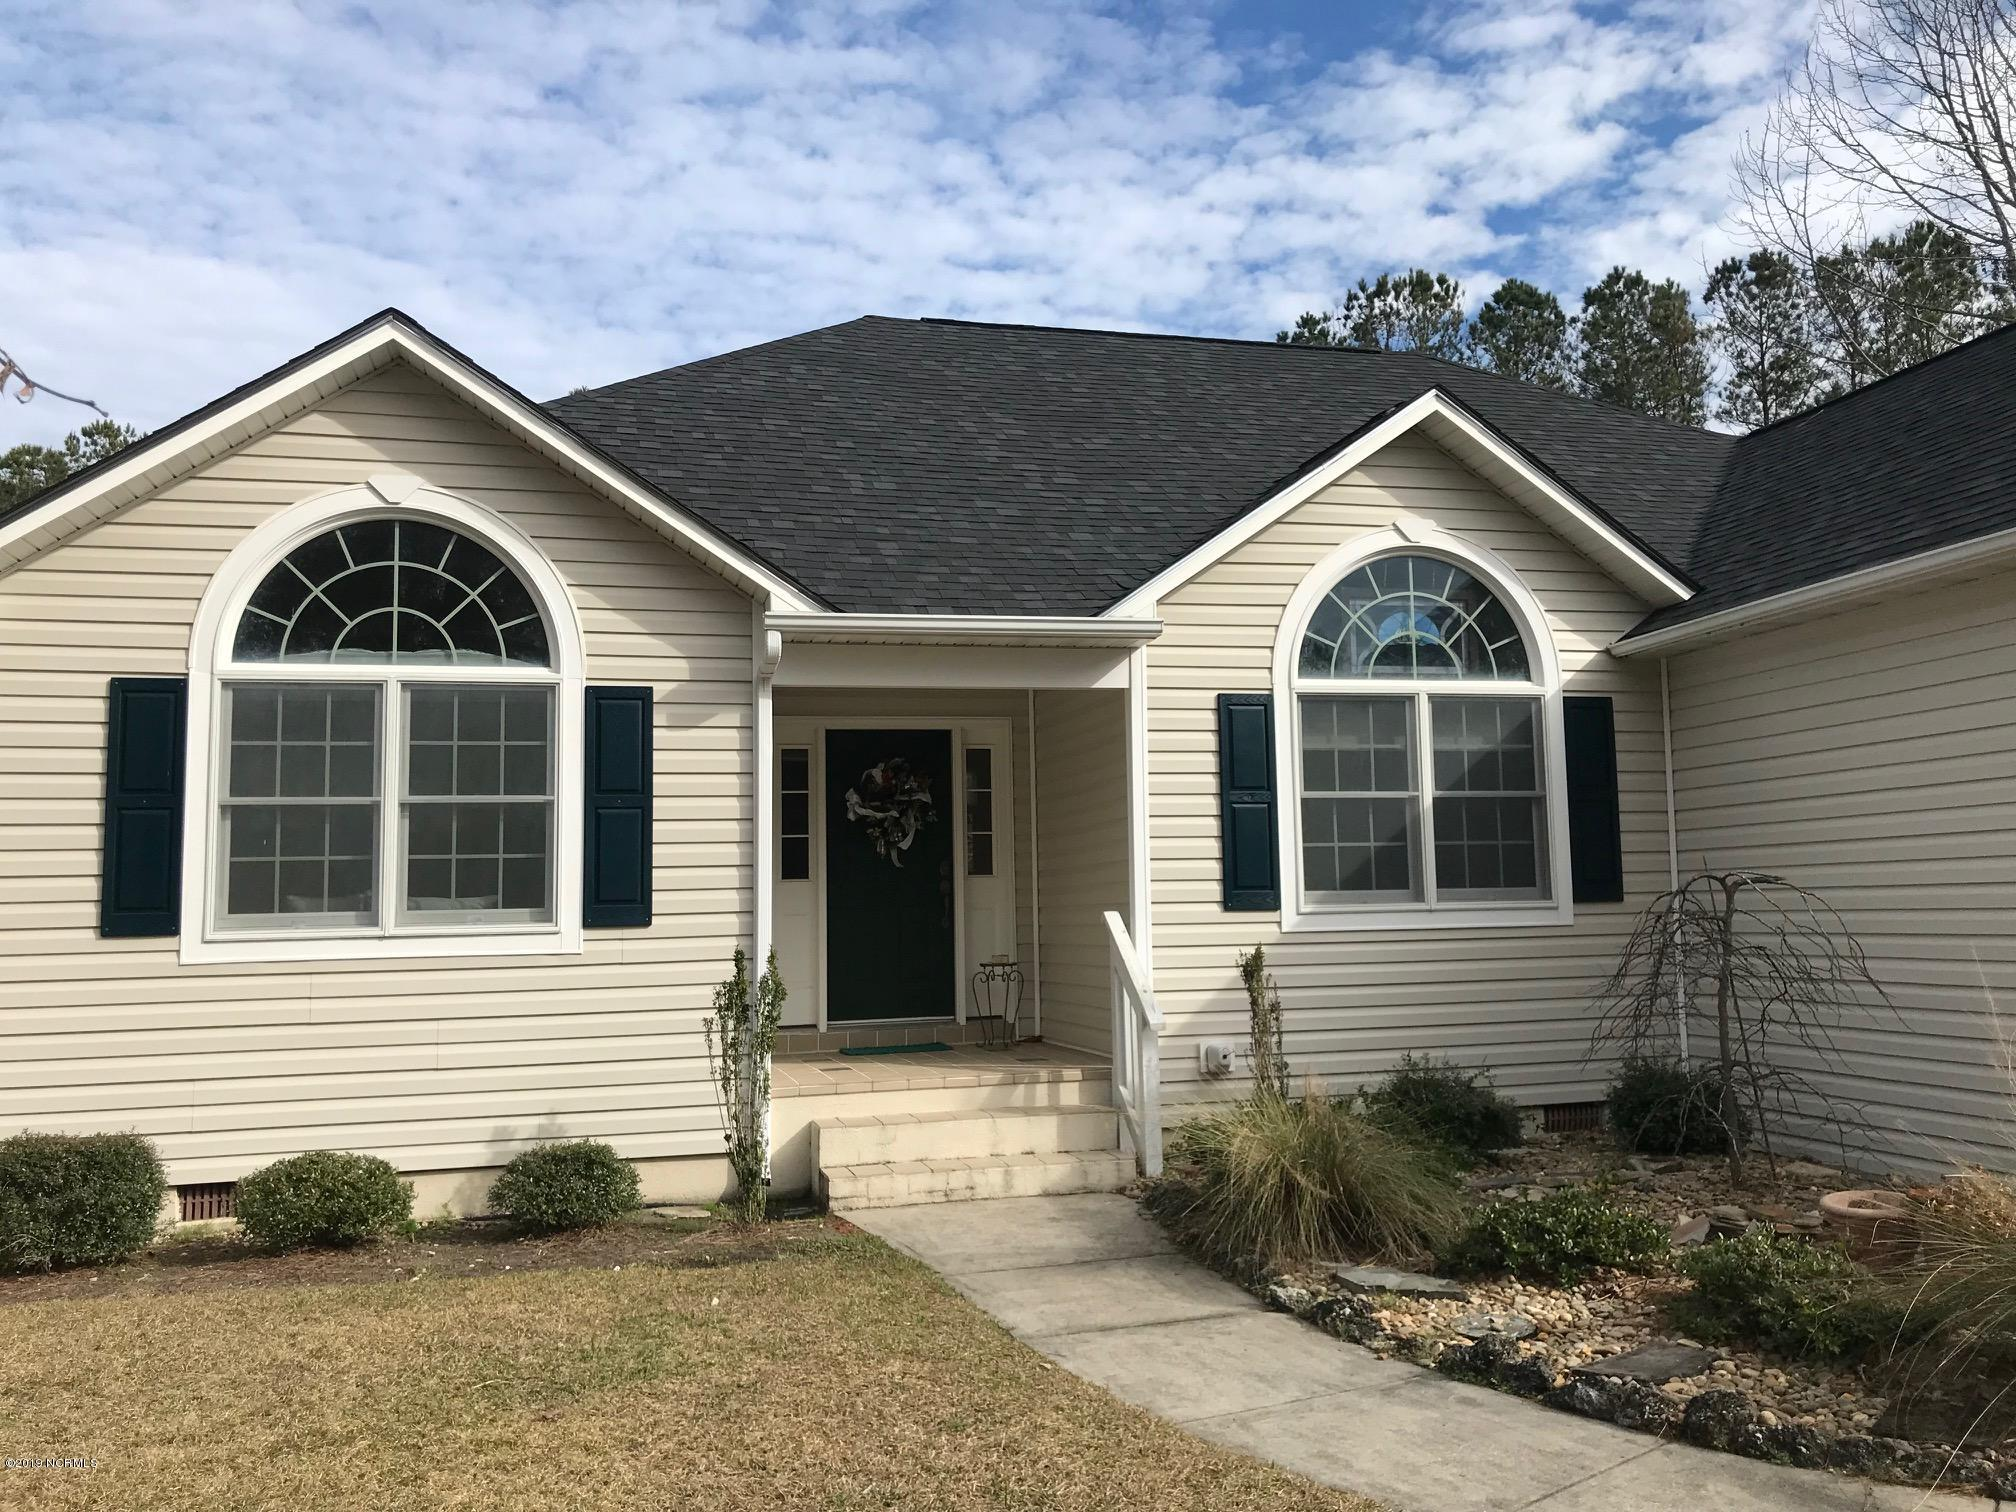 9201 Hart Drive, Oriental, North Carolina, 3 Bedrooms Bedrooms, 8 Rooms Rooms,2 BathroomsBathrooms,Single family residence,For sale,Hart,100145025